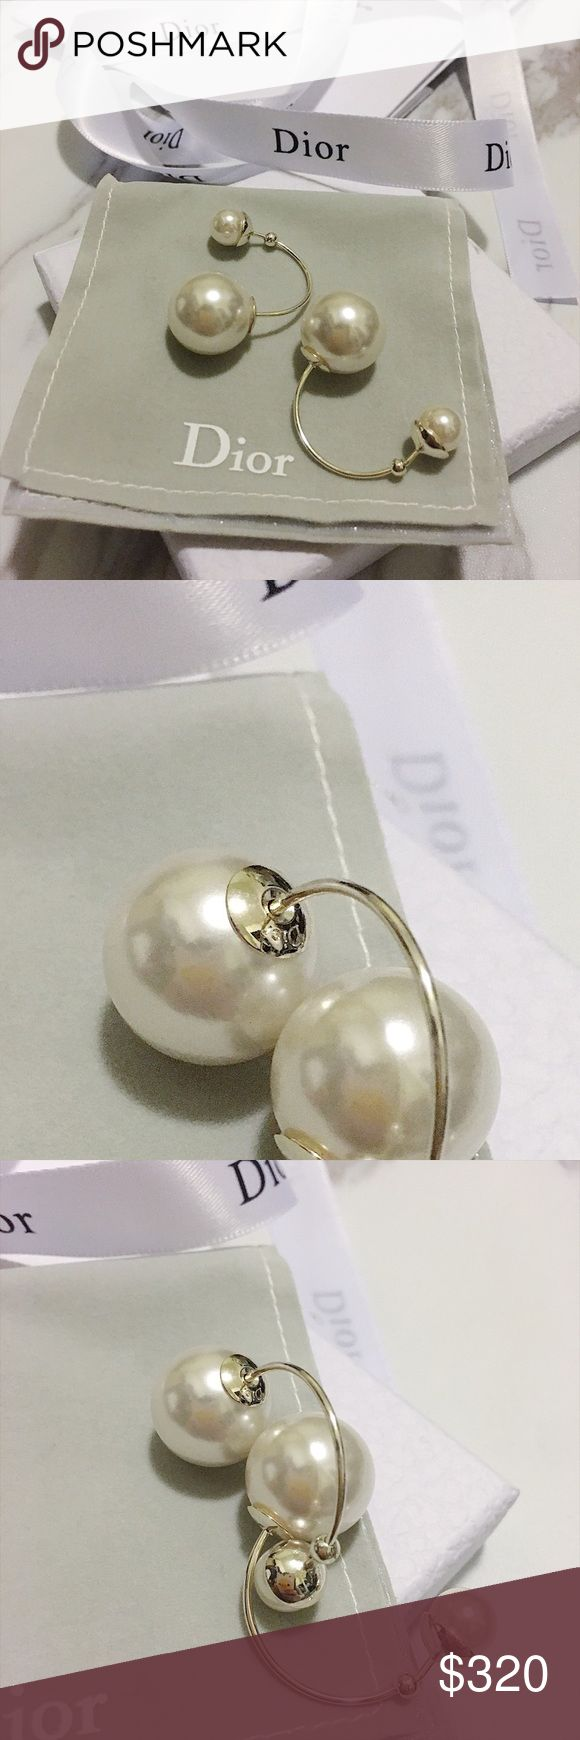 💯Dior Tribal earrings Brand new , comes with box Jewelry Earrings